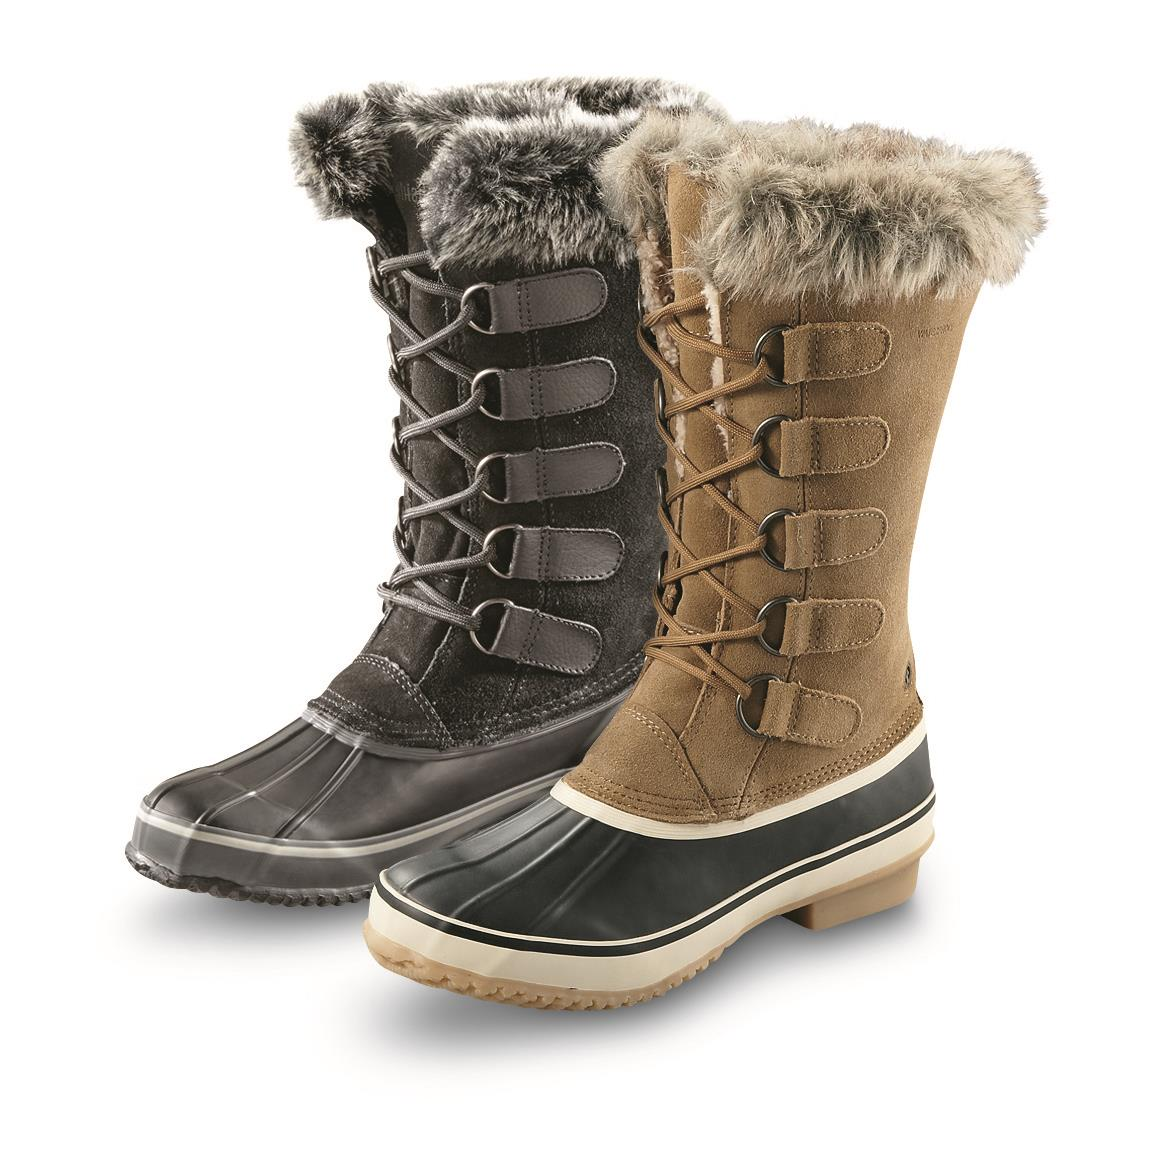 women winter boots northside womenu0027s kathmandu insulated waterproof winter boots, 200 grams in  onyx and kbtfvxd